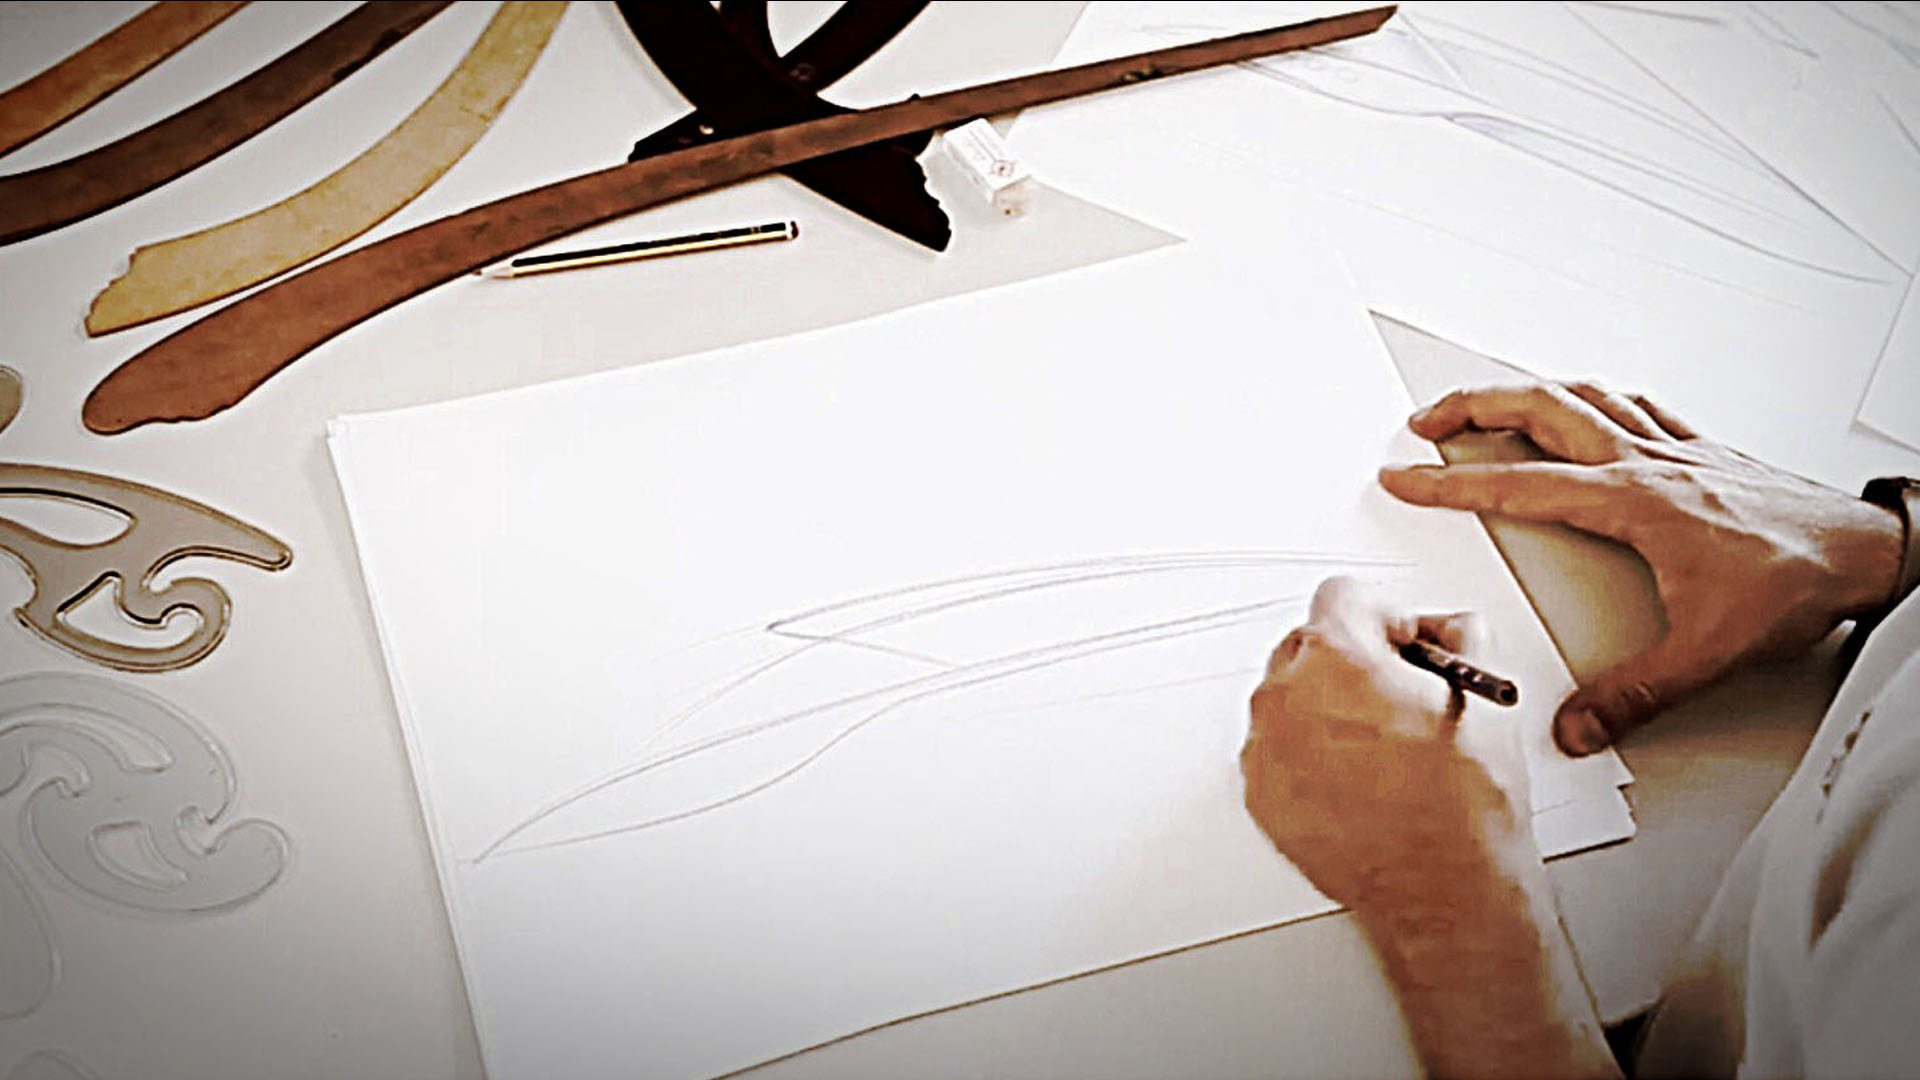 H.Bekradi sketching superyacht tenders freehand sketch yacht design